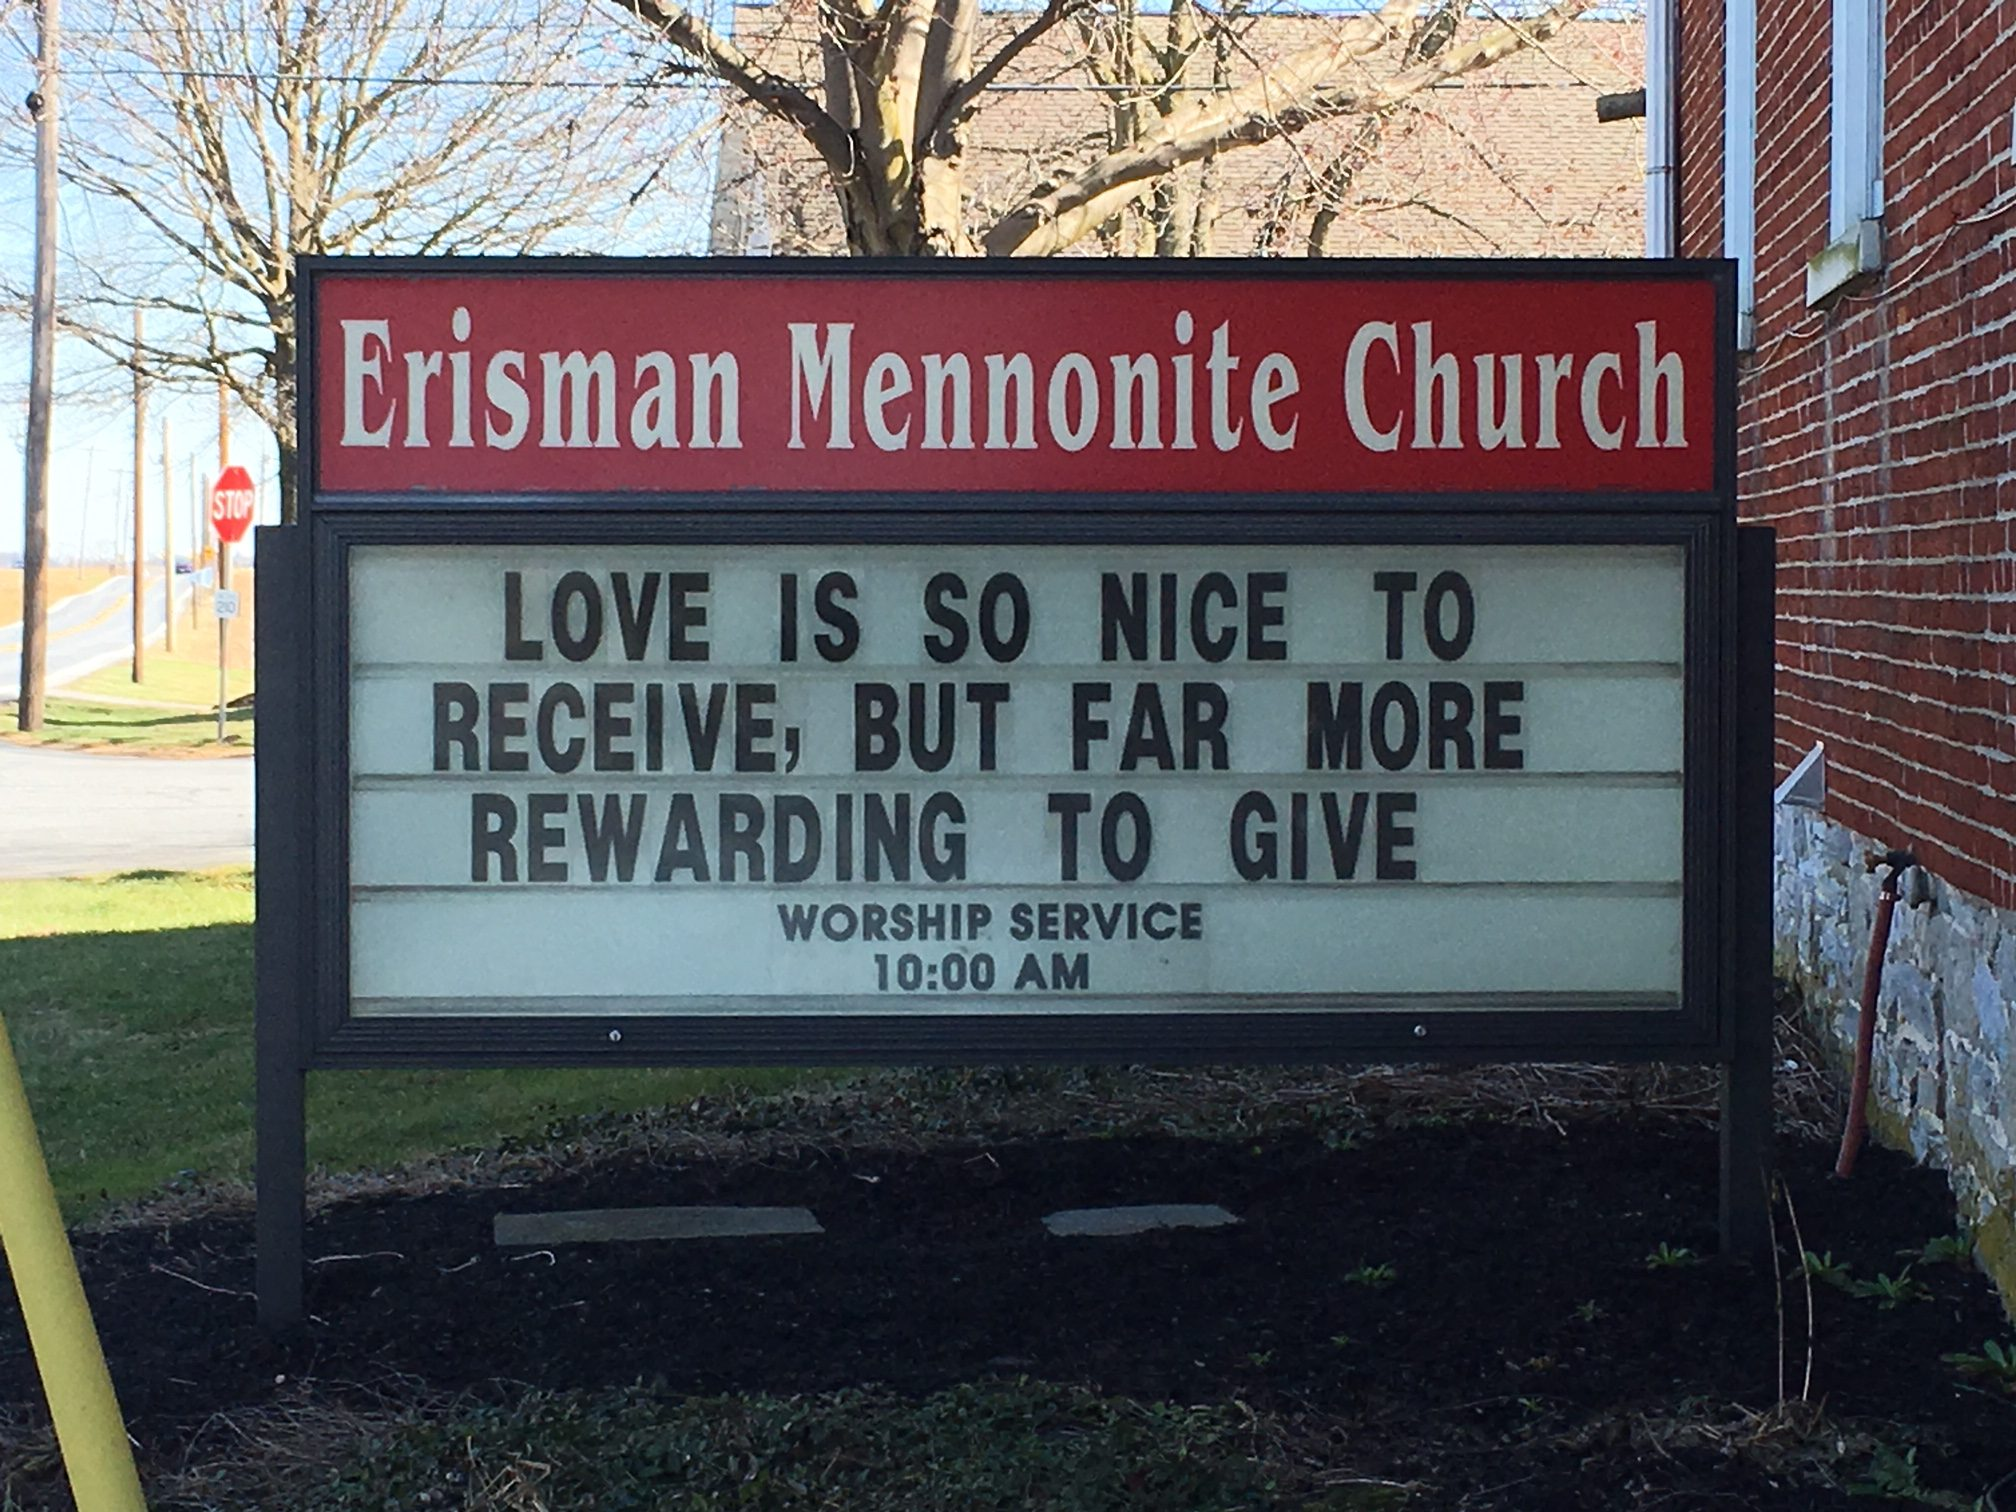 Love is so nice to receive, but far more rewarding to give. Church Sign in front of Irishman Mennonite Church